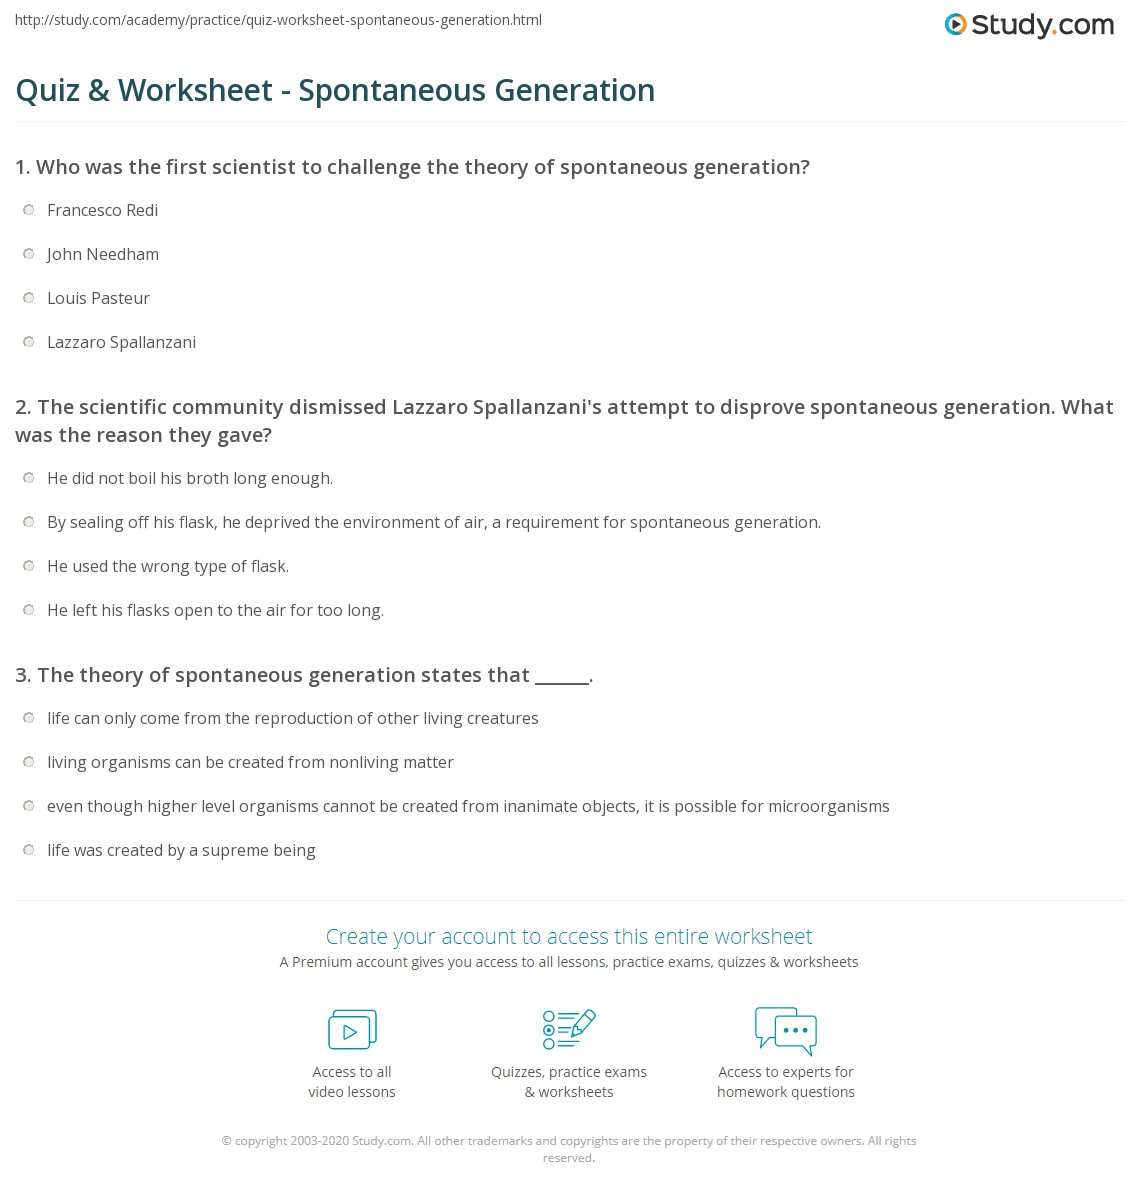 Aldiablosus  Picturesque Quiz Amp Worksheet  Spontaneous Generation  Studycom With Likable Print Spontaneous Generation Definition Theory Amp Examples Worksheet With Beauteous Lcm Worksheets For Grade  Also Spelling And Writing Worksheets In Addition Label Human Body Worksheet And English  Worksheets As Well As Divisibility Rules Worksheets Printable Additionally Speed Maths Worksheets From Studycom With Aldiablosus  Likable Quiz Amp Worksheet  Spontaneous Generation  Studycom With Beauteous Print Spontaneous Generation Definition Theory Amp Examples Worksheet And Picturesque Lcm Worksheets For Grade  Also Spelling And Writing Worksheets In Addition Label Human Body Worksheet From Studycom